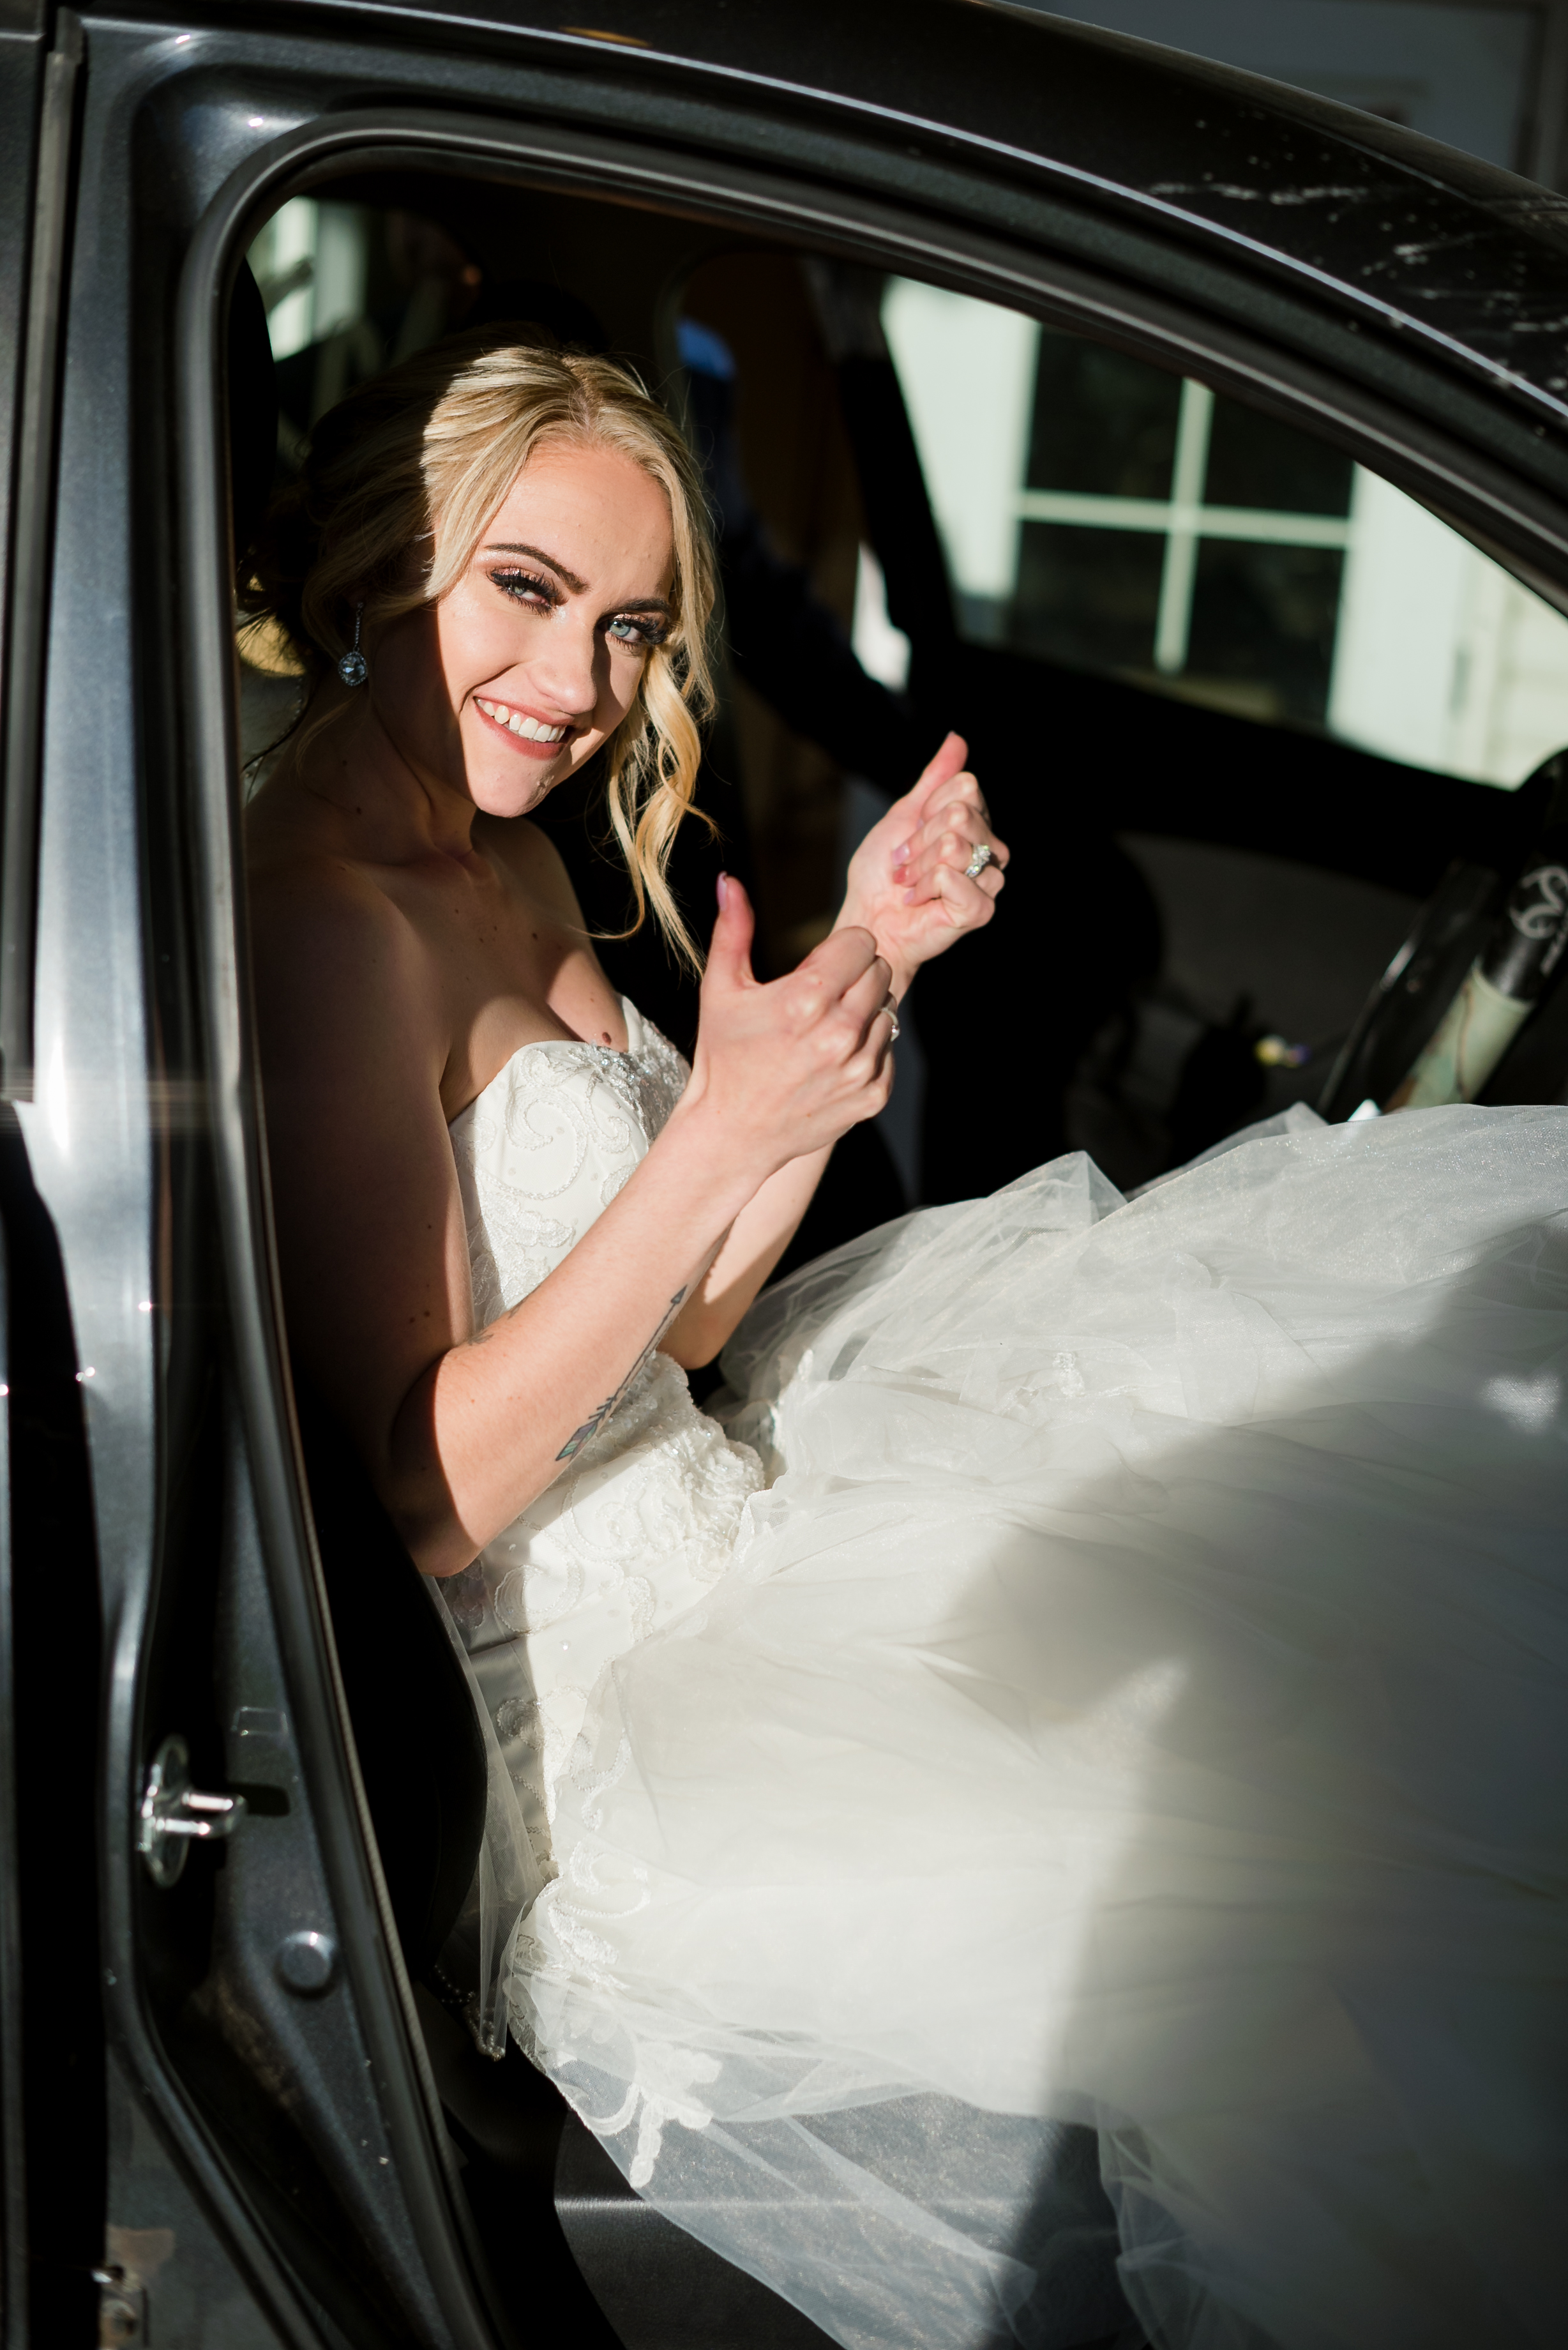 Squeezing into the get away car in a big dress? Psshhh, piece of CAKE!